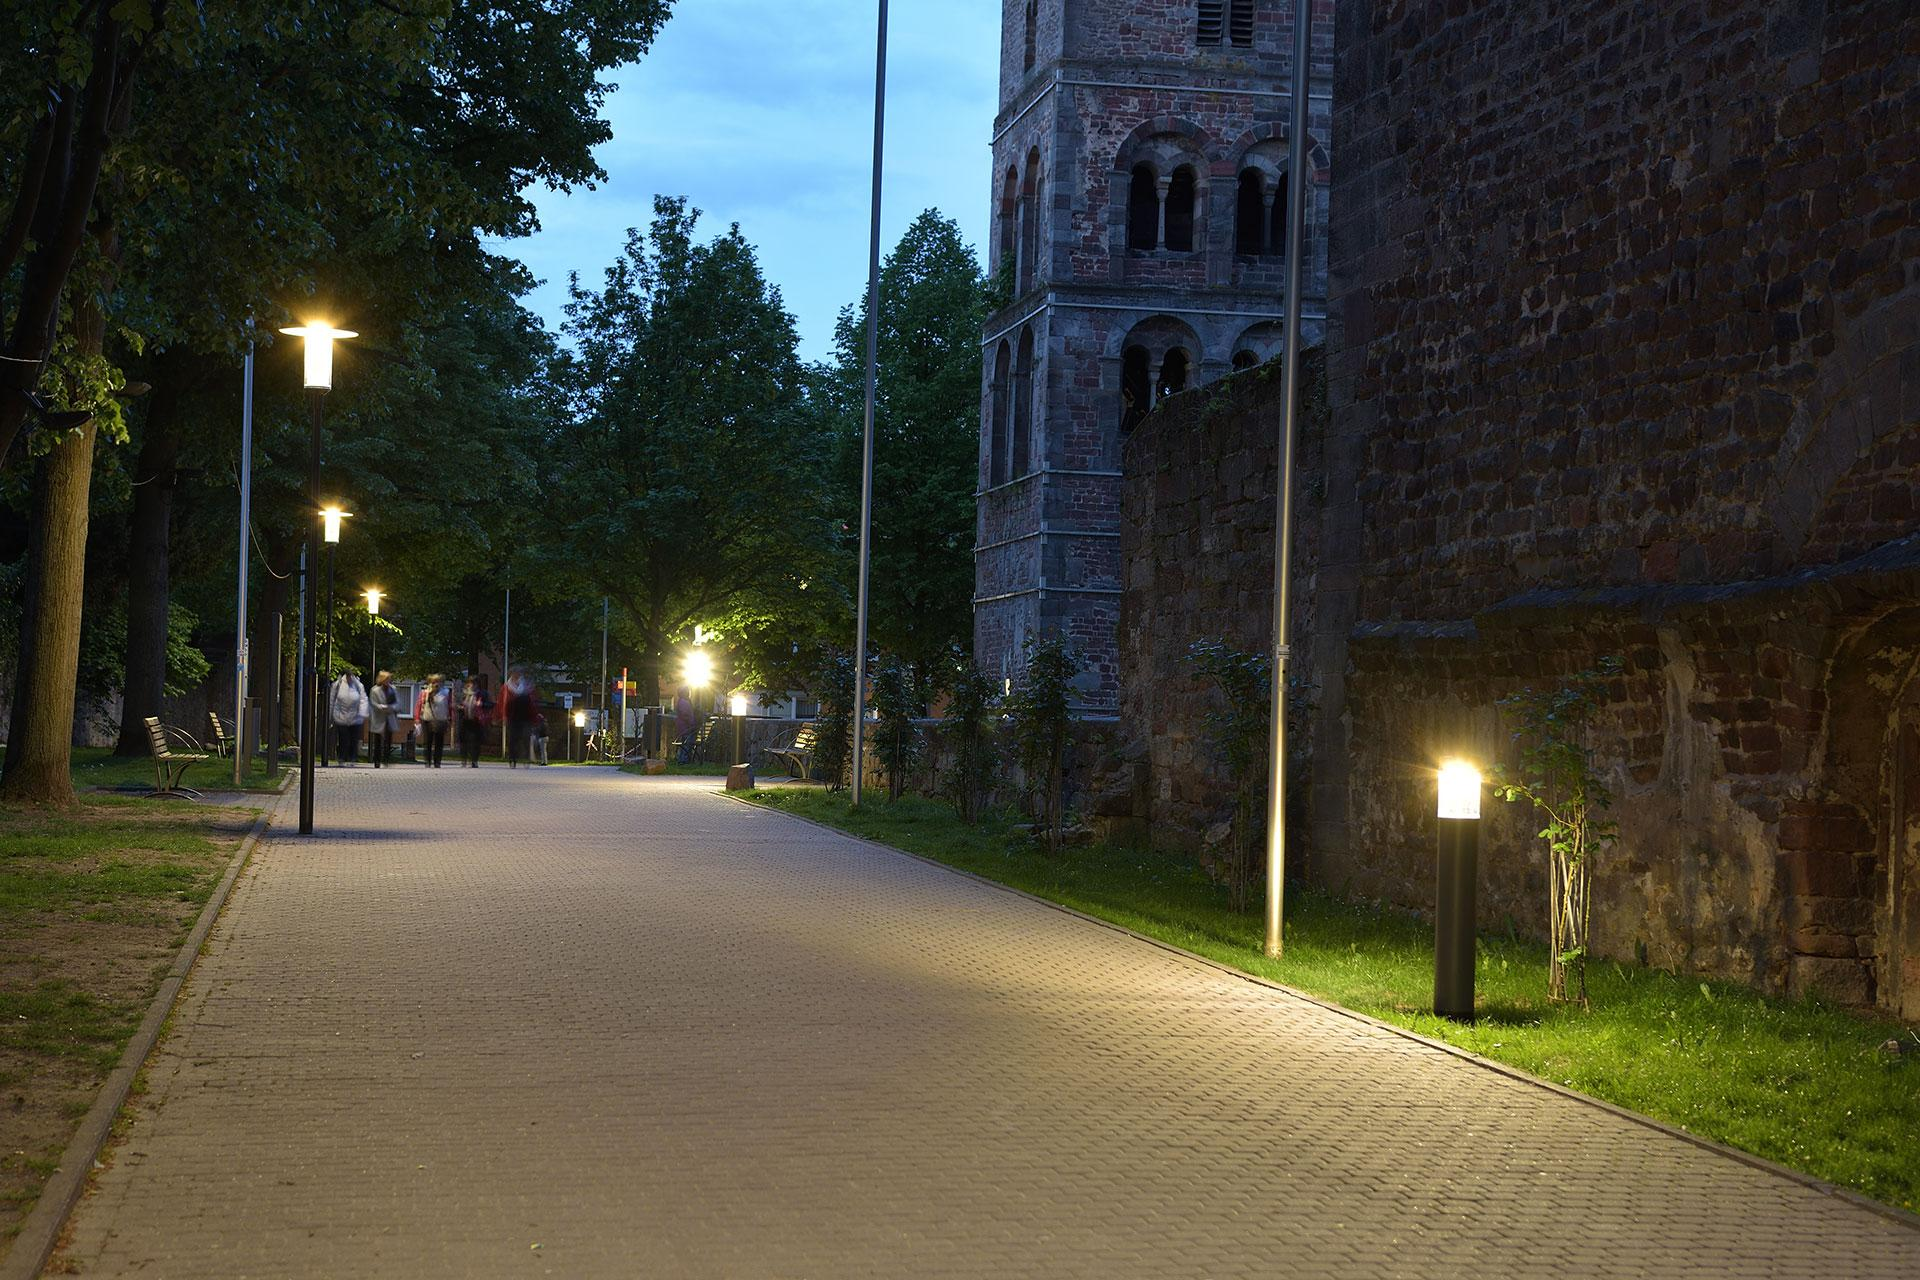 Zylindo street light improves safety and comfort for Bad Hersfeld